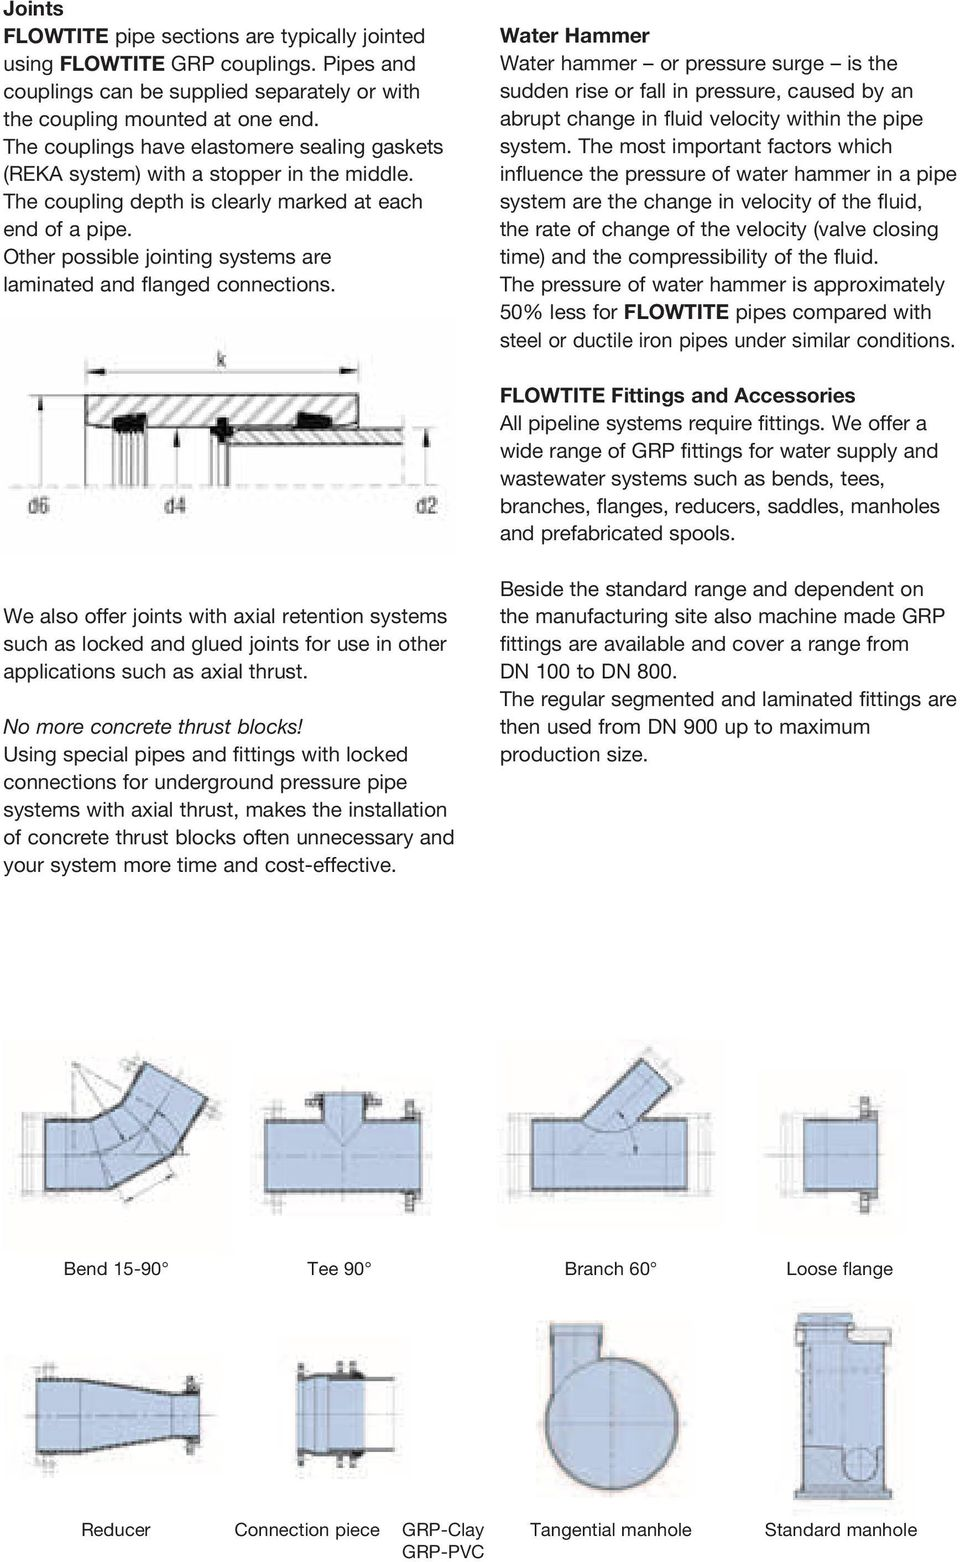 GRP Pipe systems  for Water, Sewage and Industrial Applications - PDF